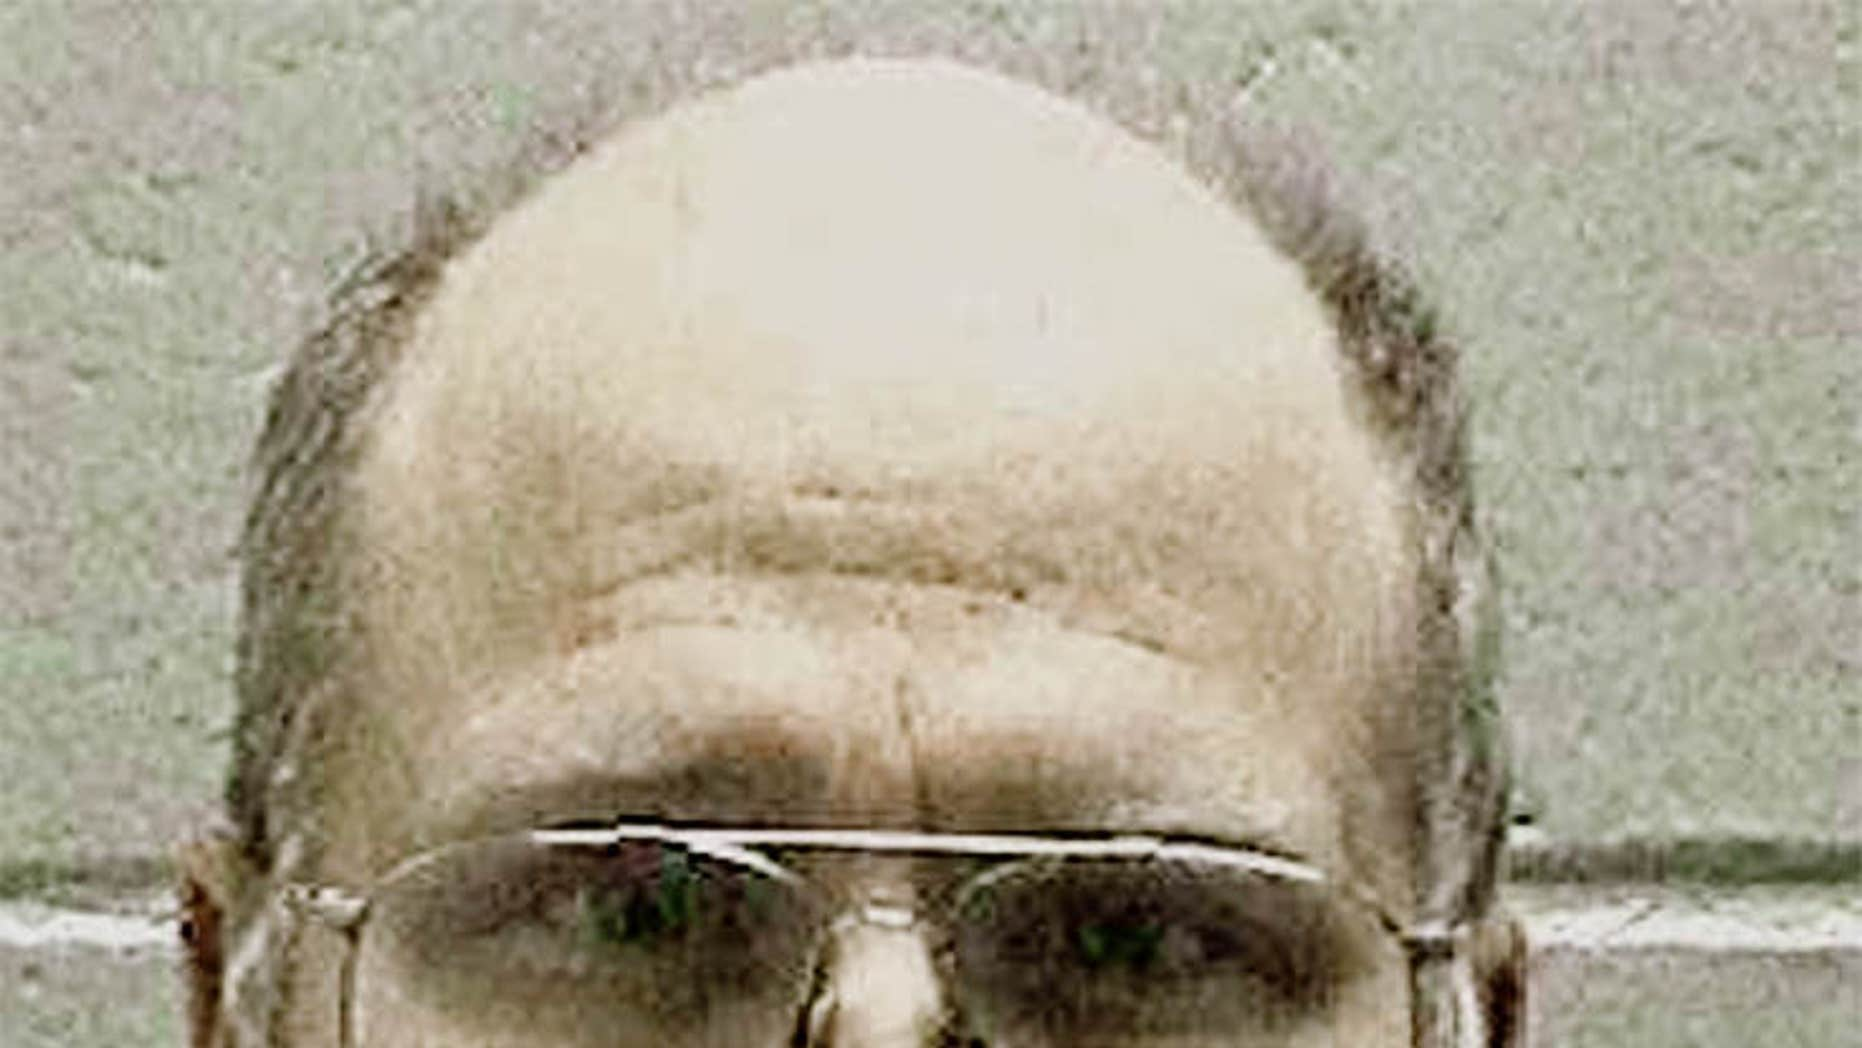 FILE -In this undated file photo released by the Georgia Department of Corrections shows death row inmate and former U.S. Navy sailor Travis Hittson in Georgia. Hittson, 45, is to scheduled be put to death Wednesday evening, Feb. 17, 2016.